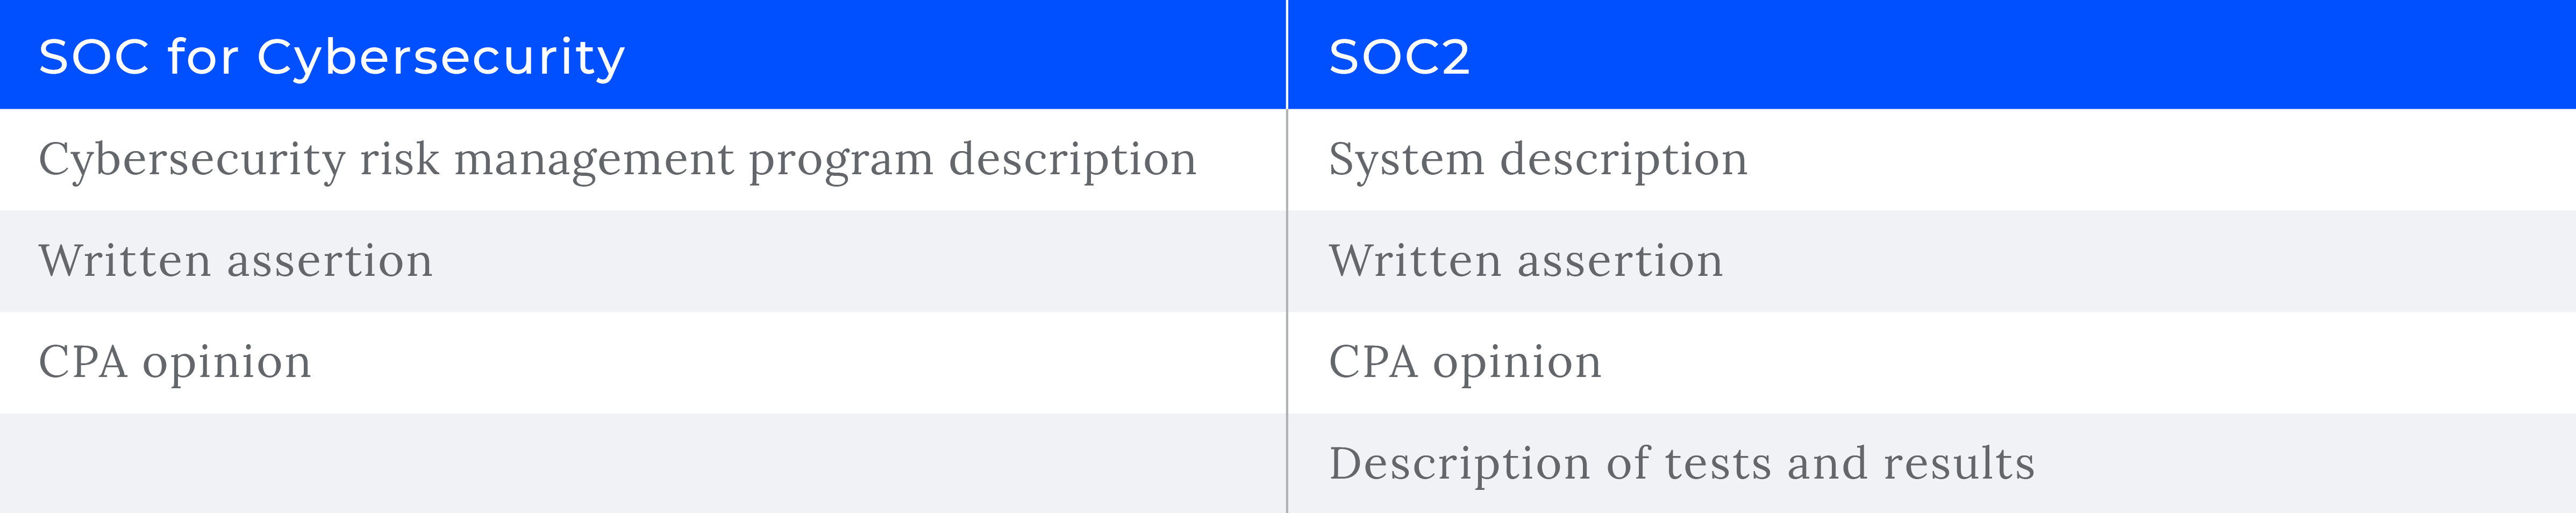 SOC for Cybersecurity vs. SOC 2: 5 key differences